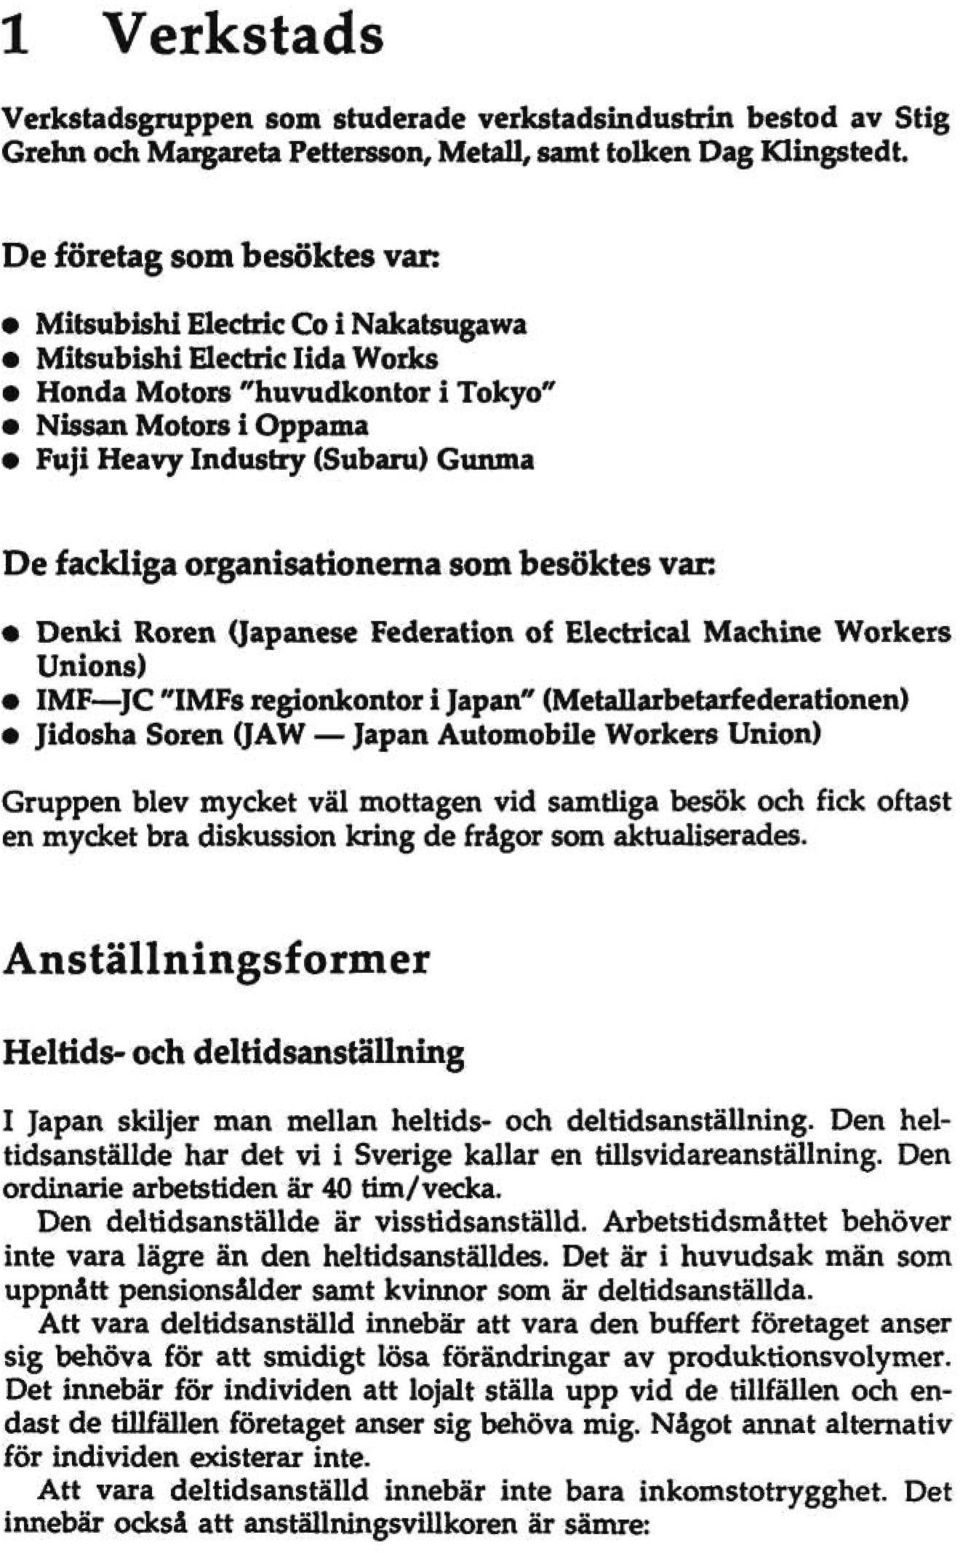 "fackliga organisationerna som besöktes var: Denki Rören (Japanese Federation of Electrical Machine Workers Unions) IMF JC ""IMFs regionkontor i Japan"" (MetaUarbetarf ederationen) Jidosha Sören (JAW"